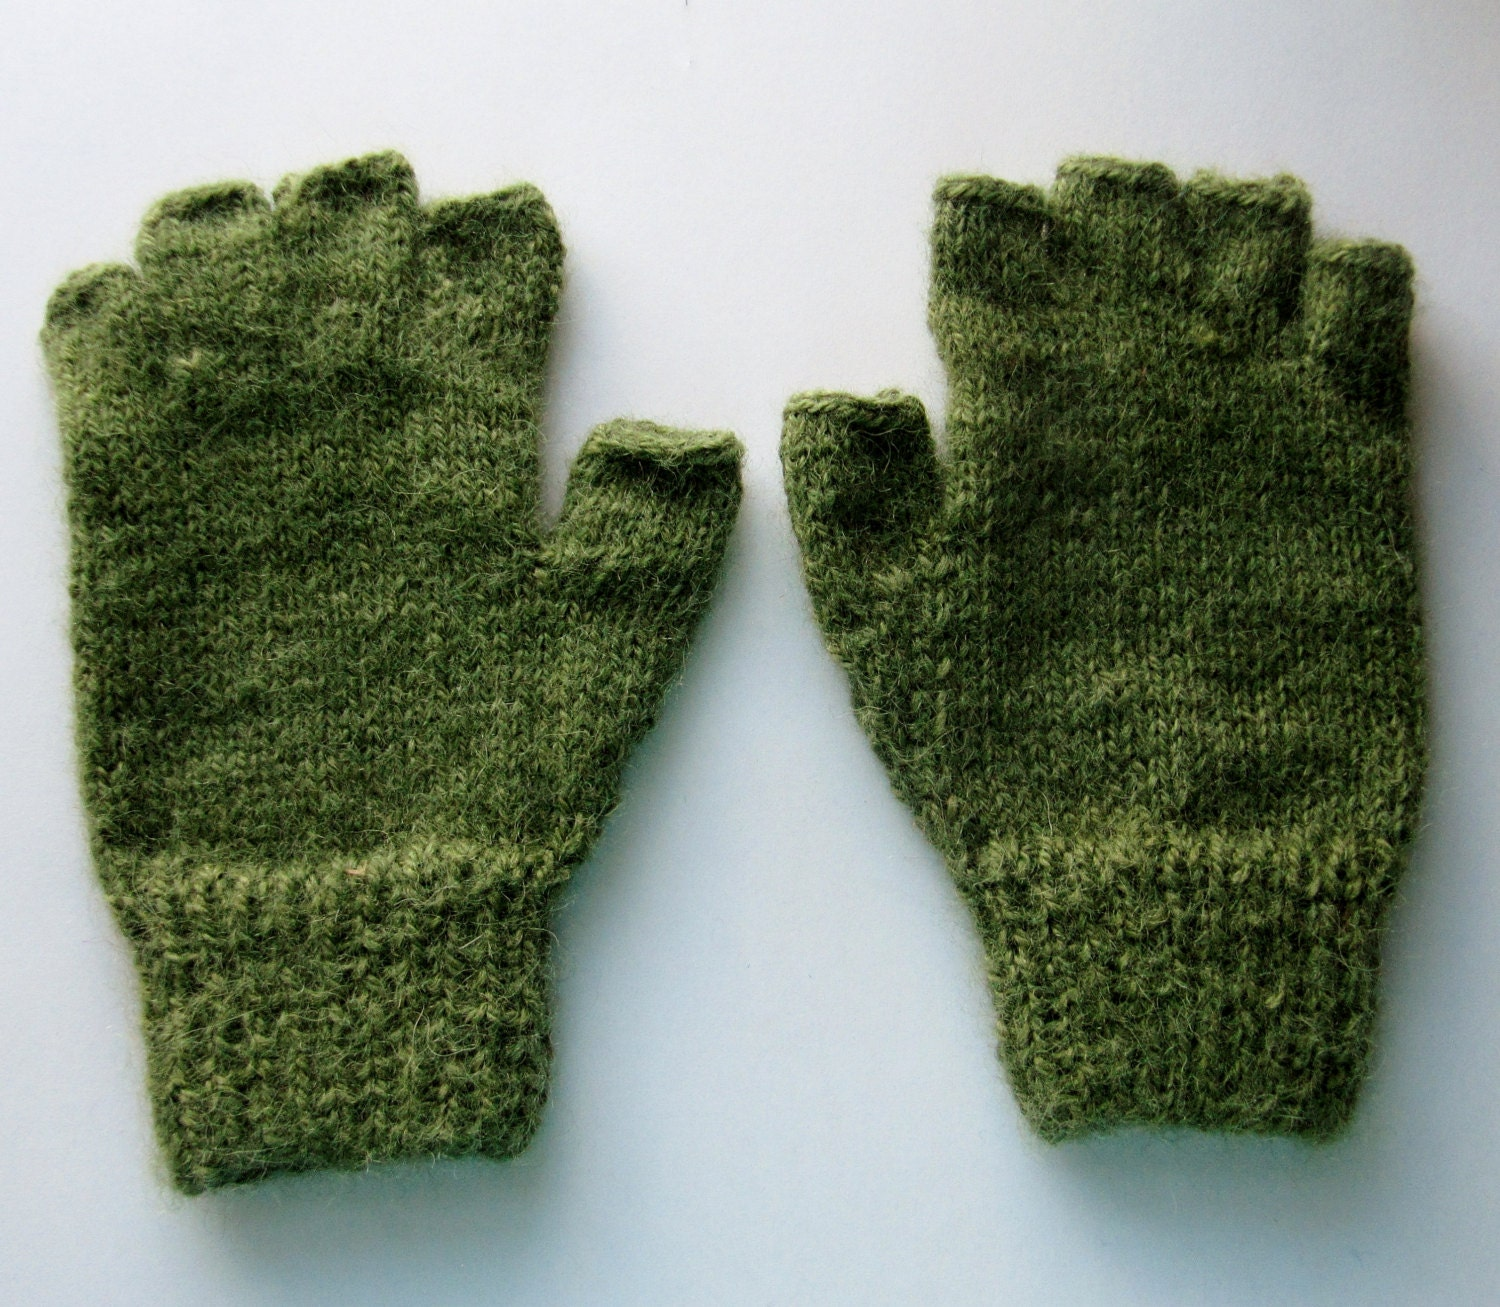 Hobo Gloves Knitting Pattern : Wool Fingerless Gloves Hobo Gloves Gloves Mittens by KadyLadyLoo